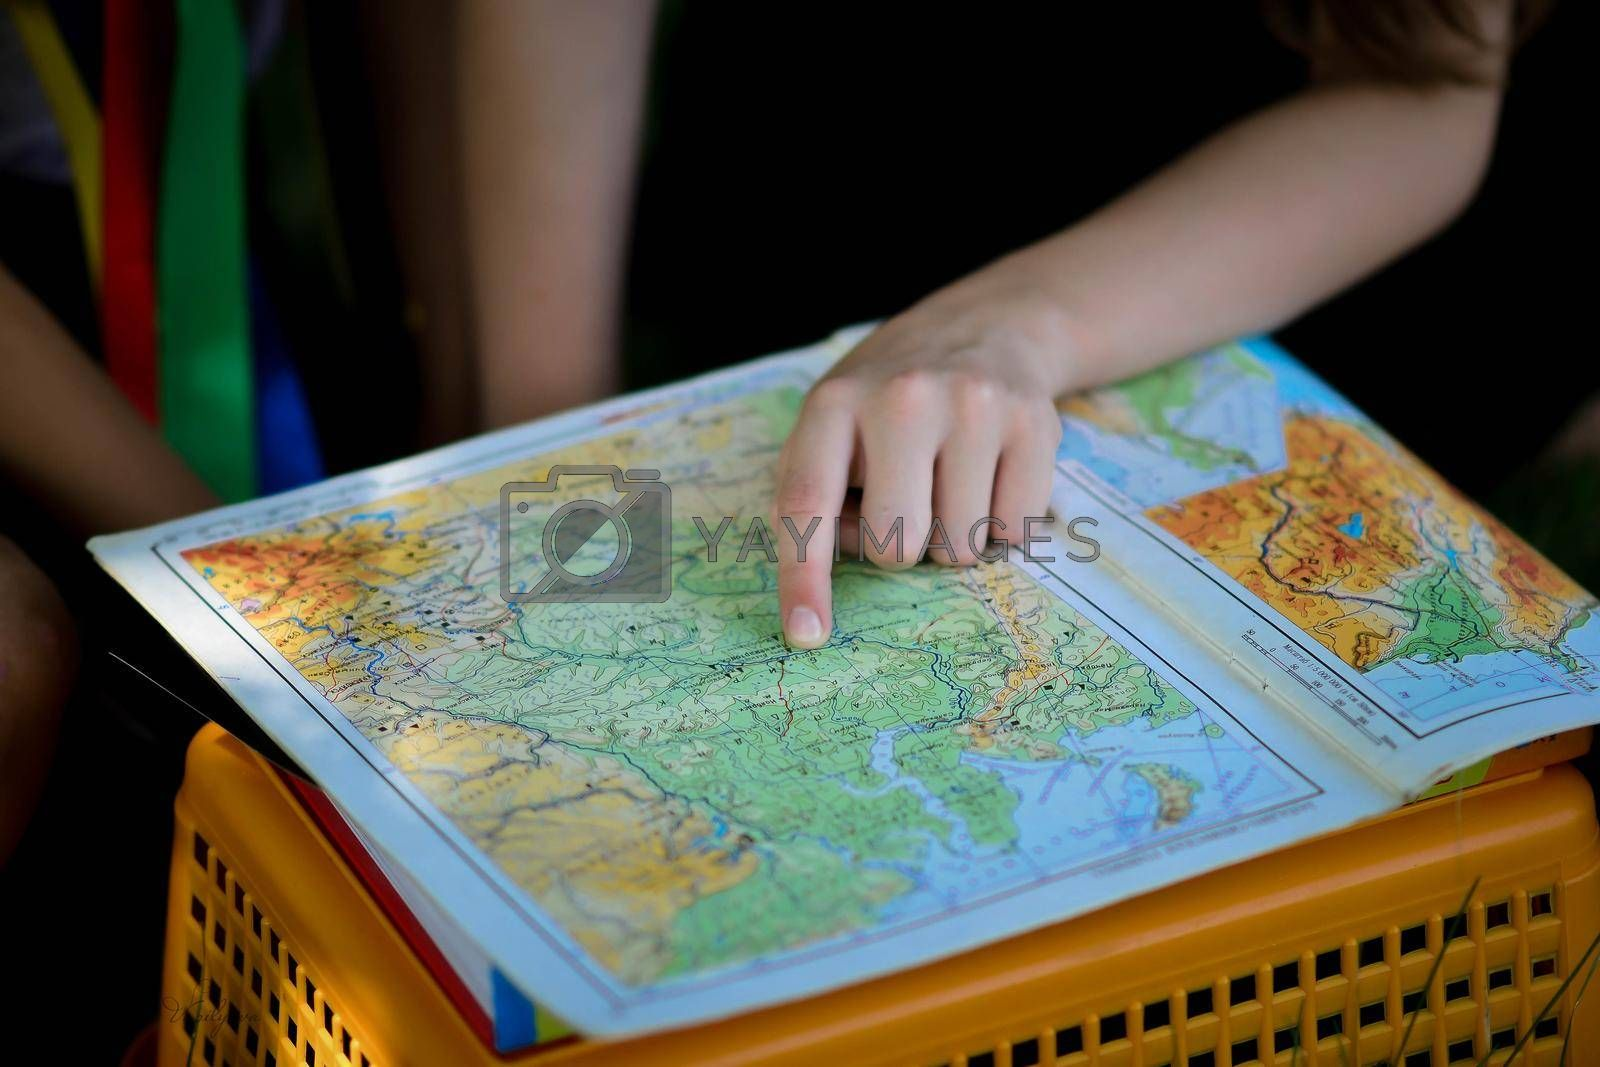 the girl is looking at a geographical atlas. geographical map in the hands of a schoolboy girl. High quality photo